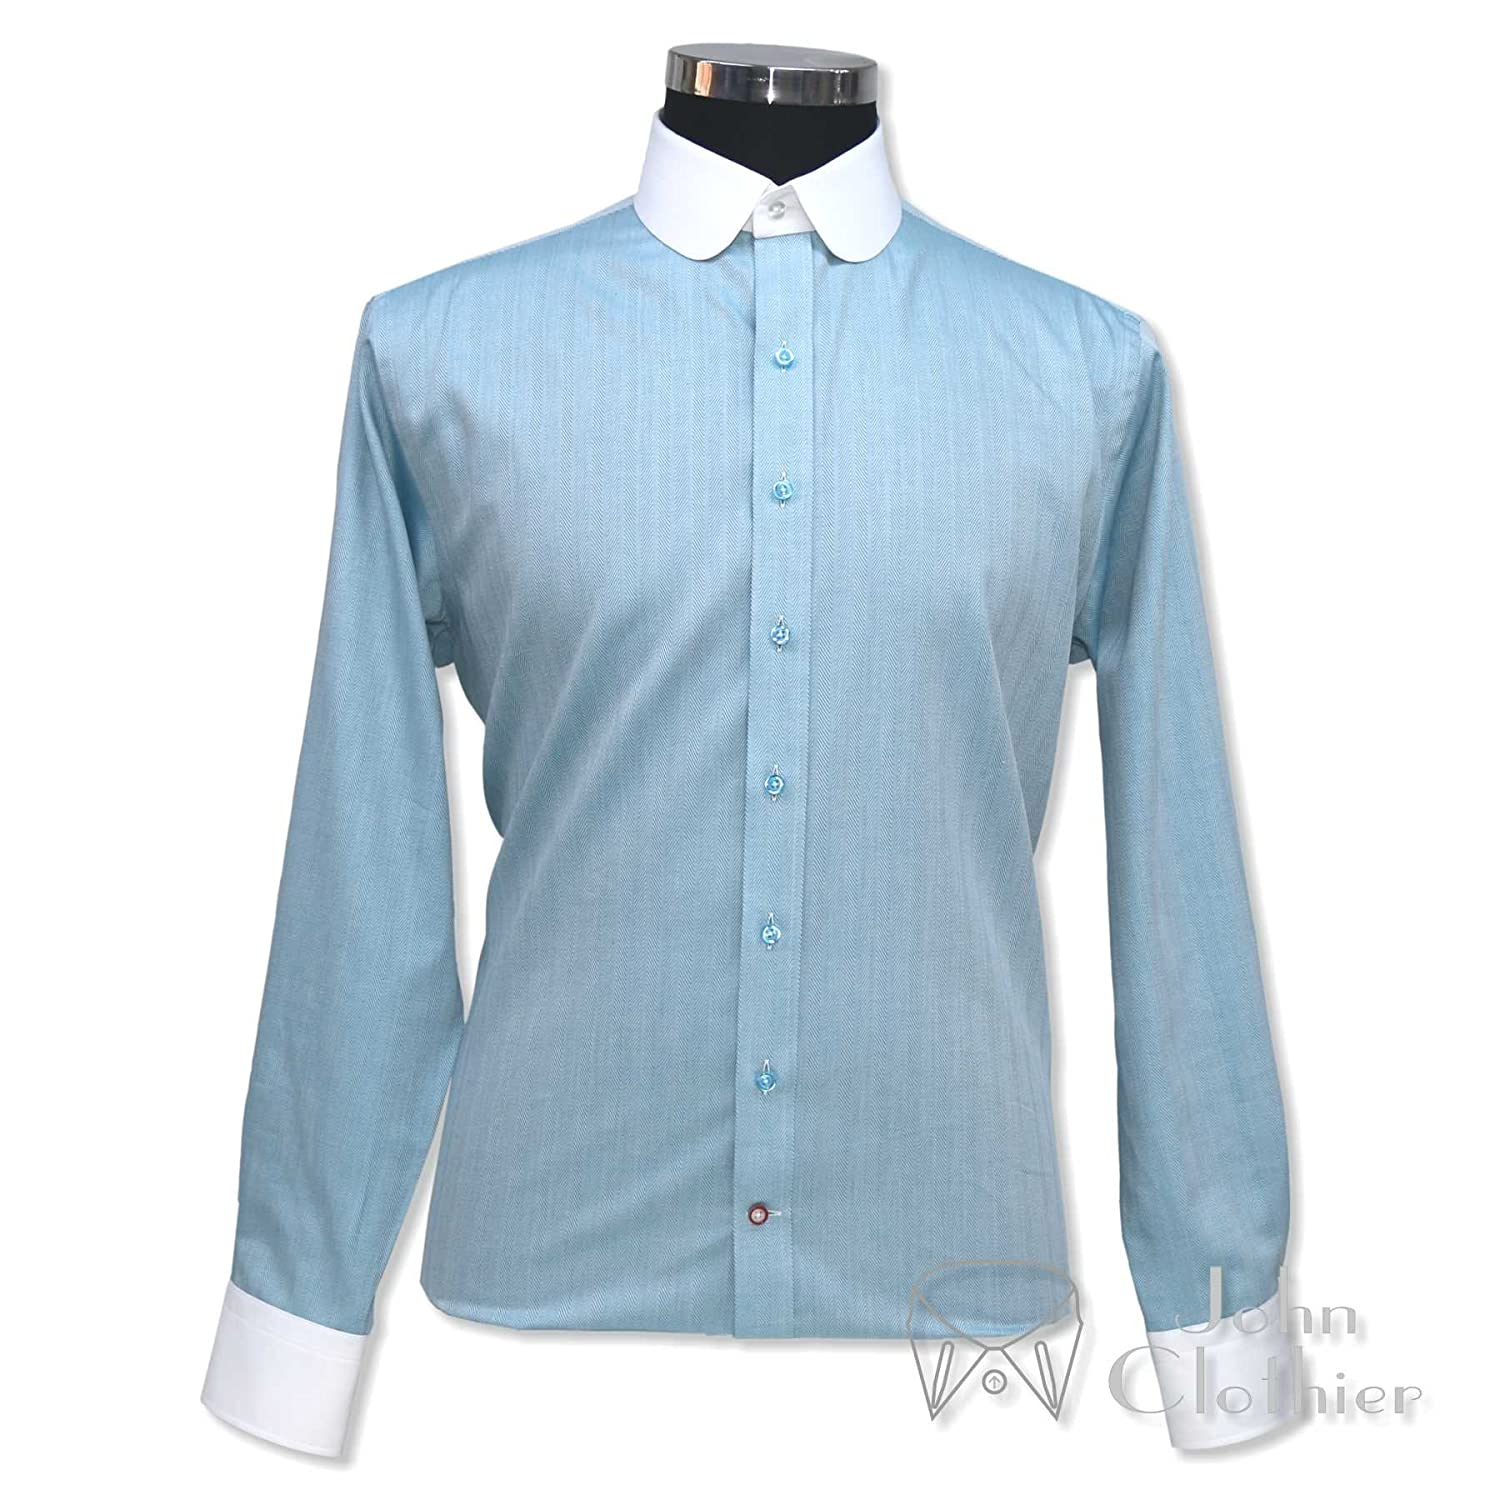 Men's Vintage Christmas Gift Ideas WhitePilotShirts Round Collar Peaky Blinders Mens Bankers Shirt Sea Blue Herringbone 100% Cotton Penny Collar Gents 100-26 $99.99 AT vintagedancer.com